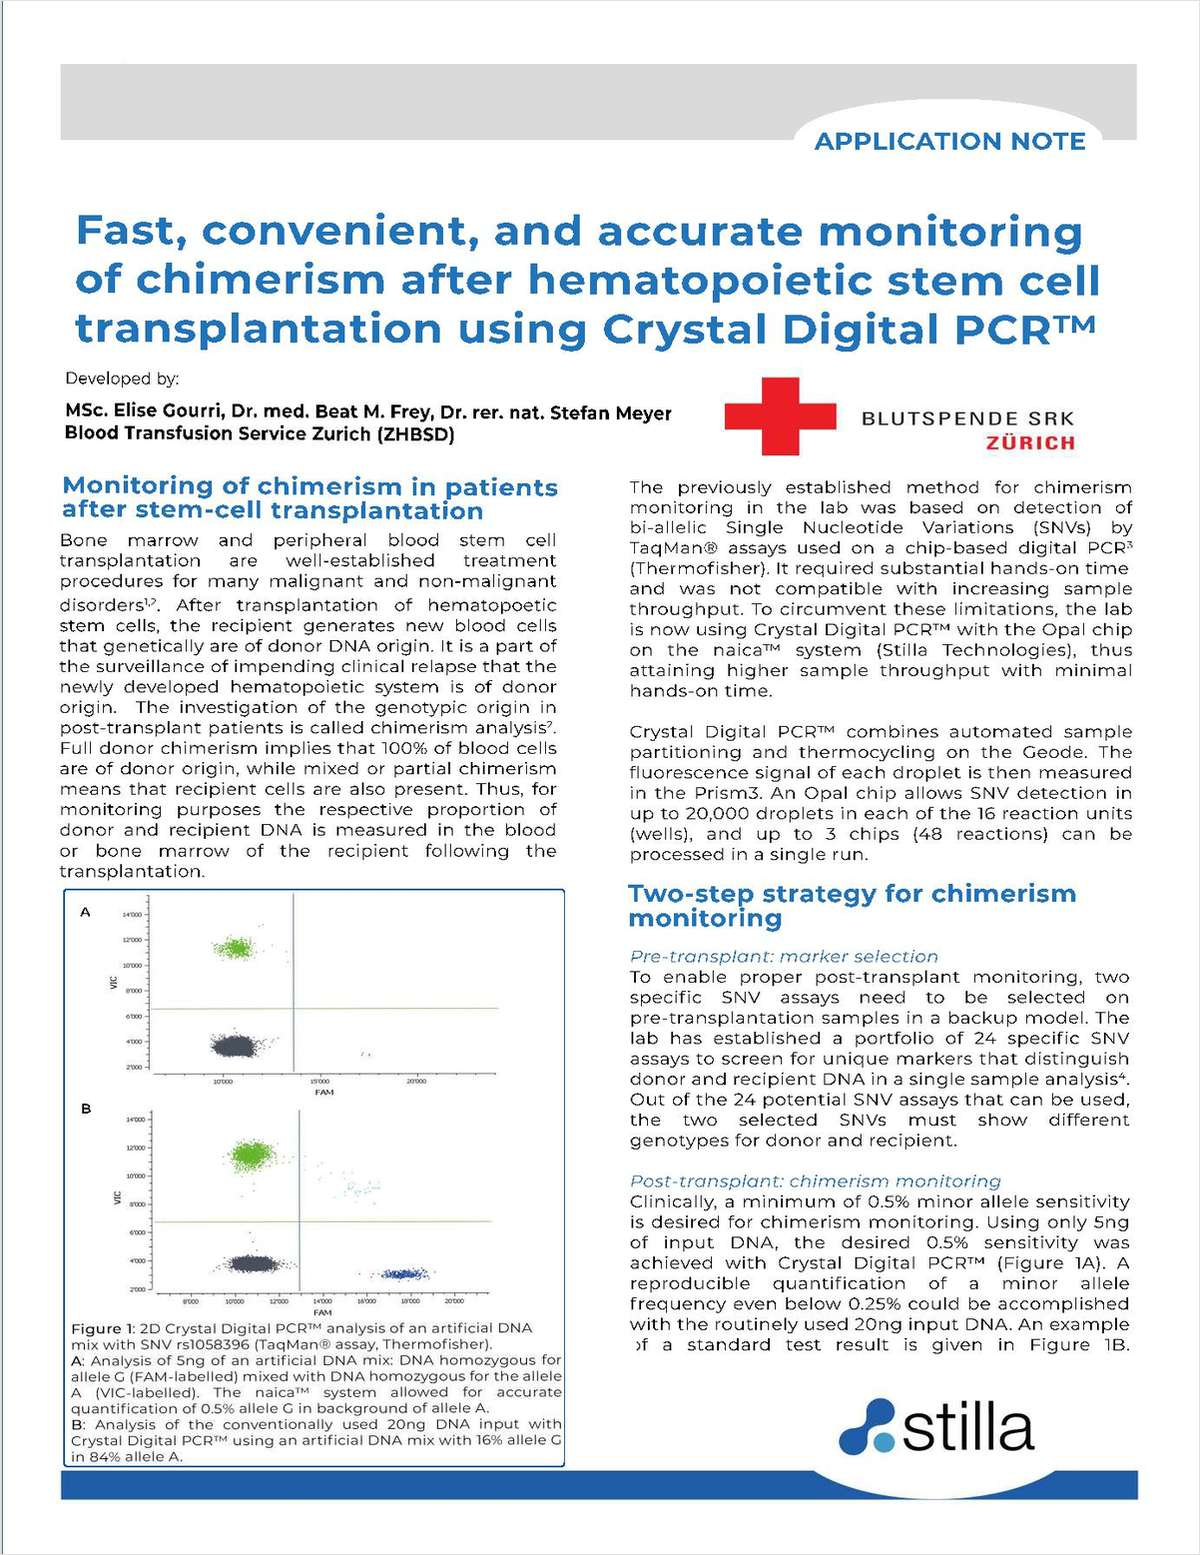 Fast, Convenient, and Accurate Monitoring of Chimerism after Hematopoietic Stem Cell Transplantation using Crystal Digital PCR